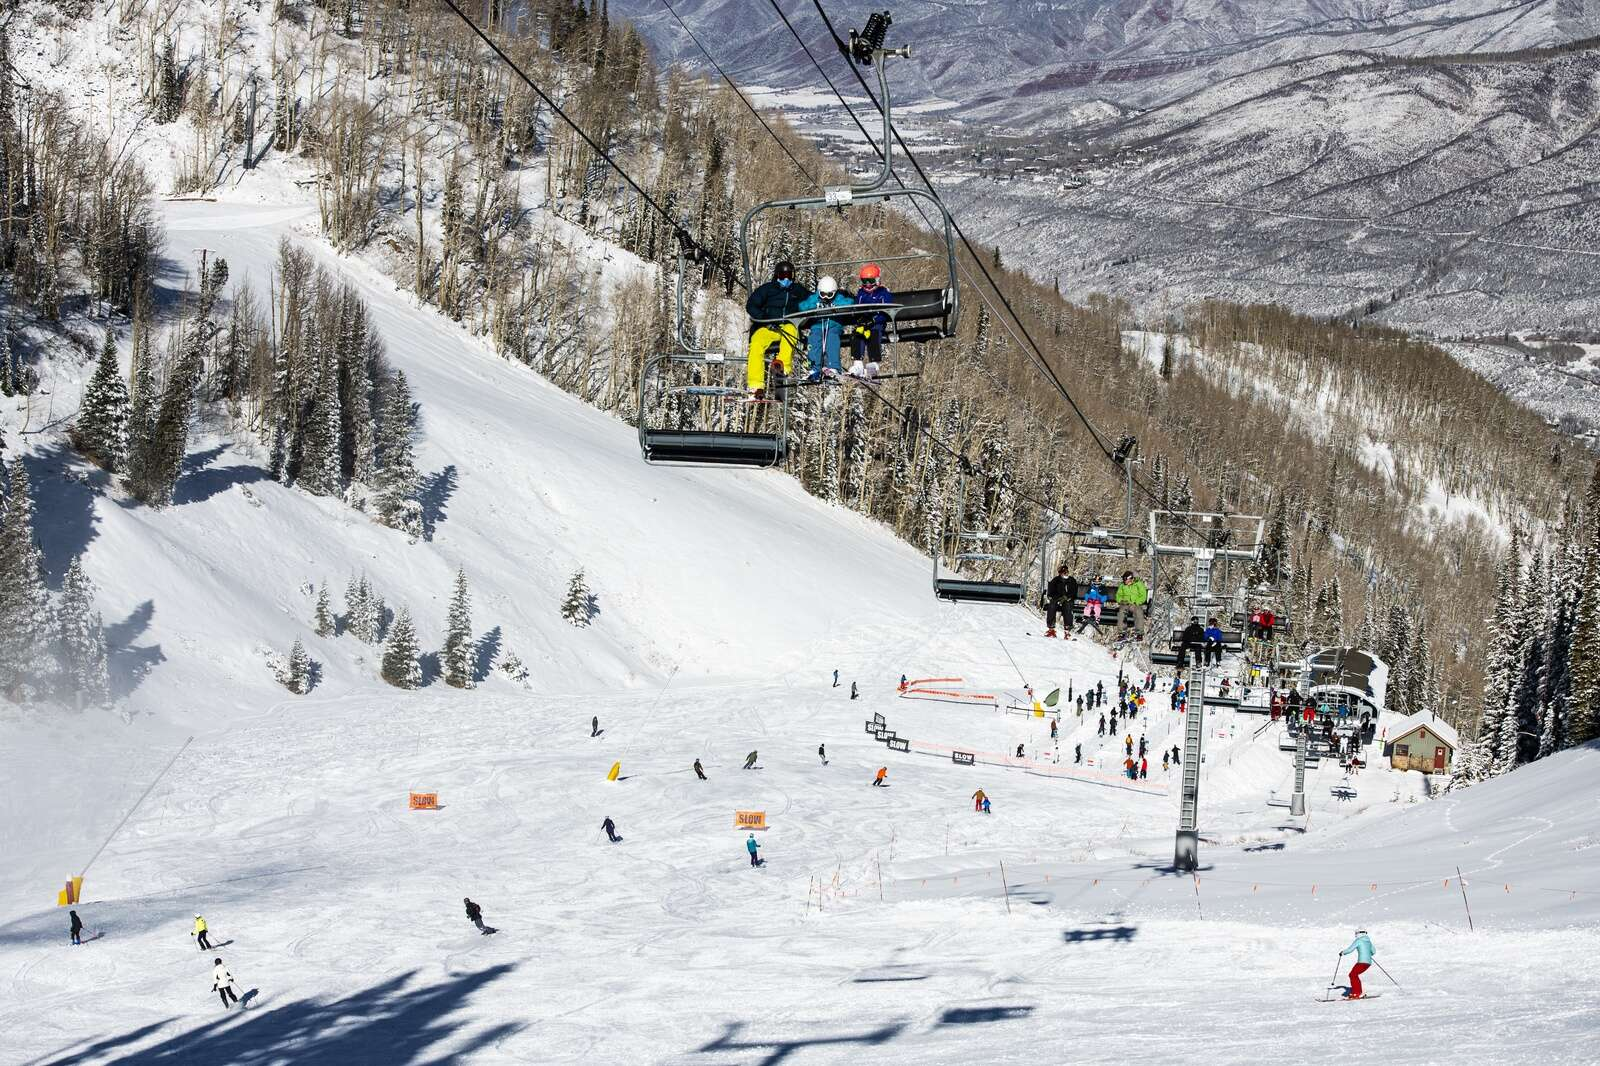 People enjoy a bluebird opening day on Aspen Mountain on Wednesday, Nov. 25, 2020. (Kelsey Brunner/The Aspen Times)